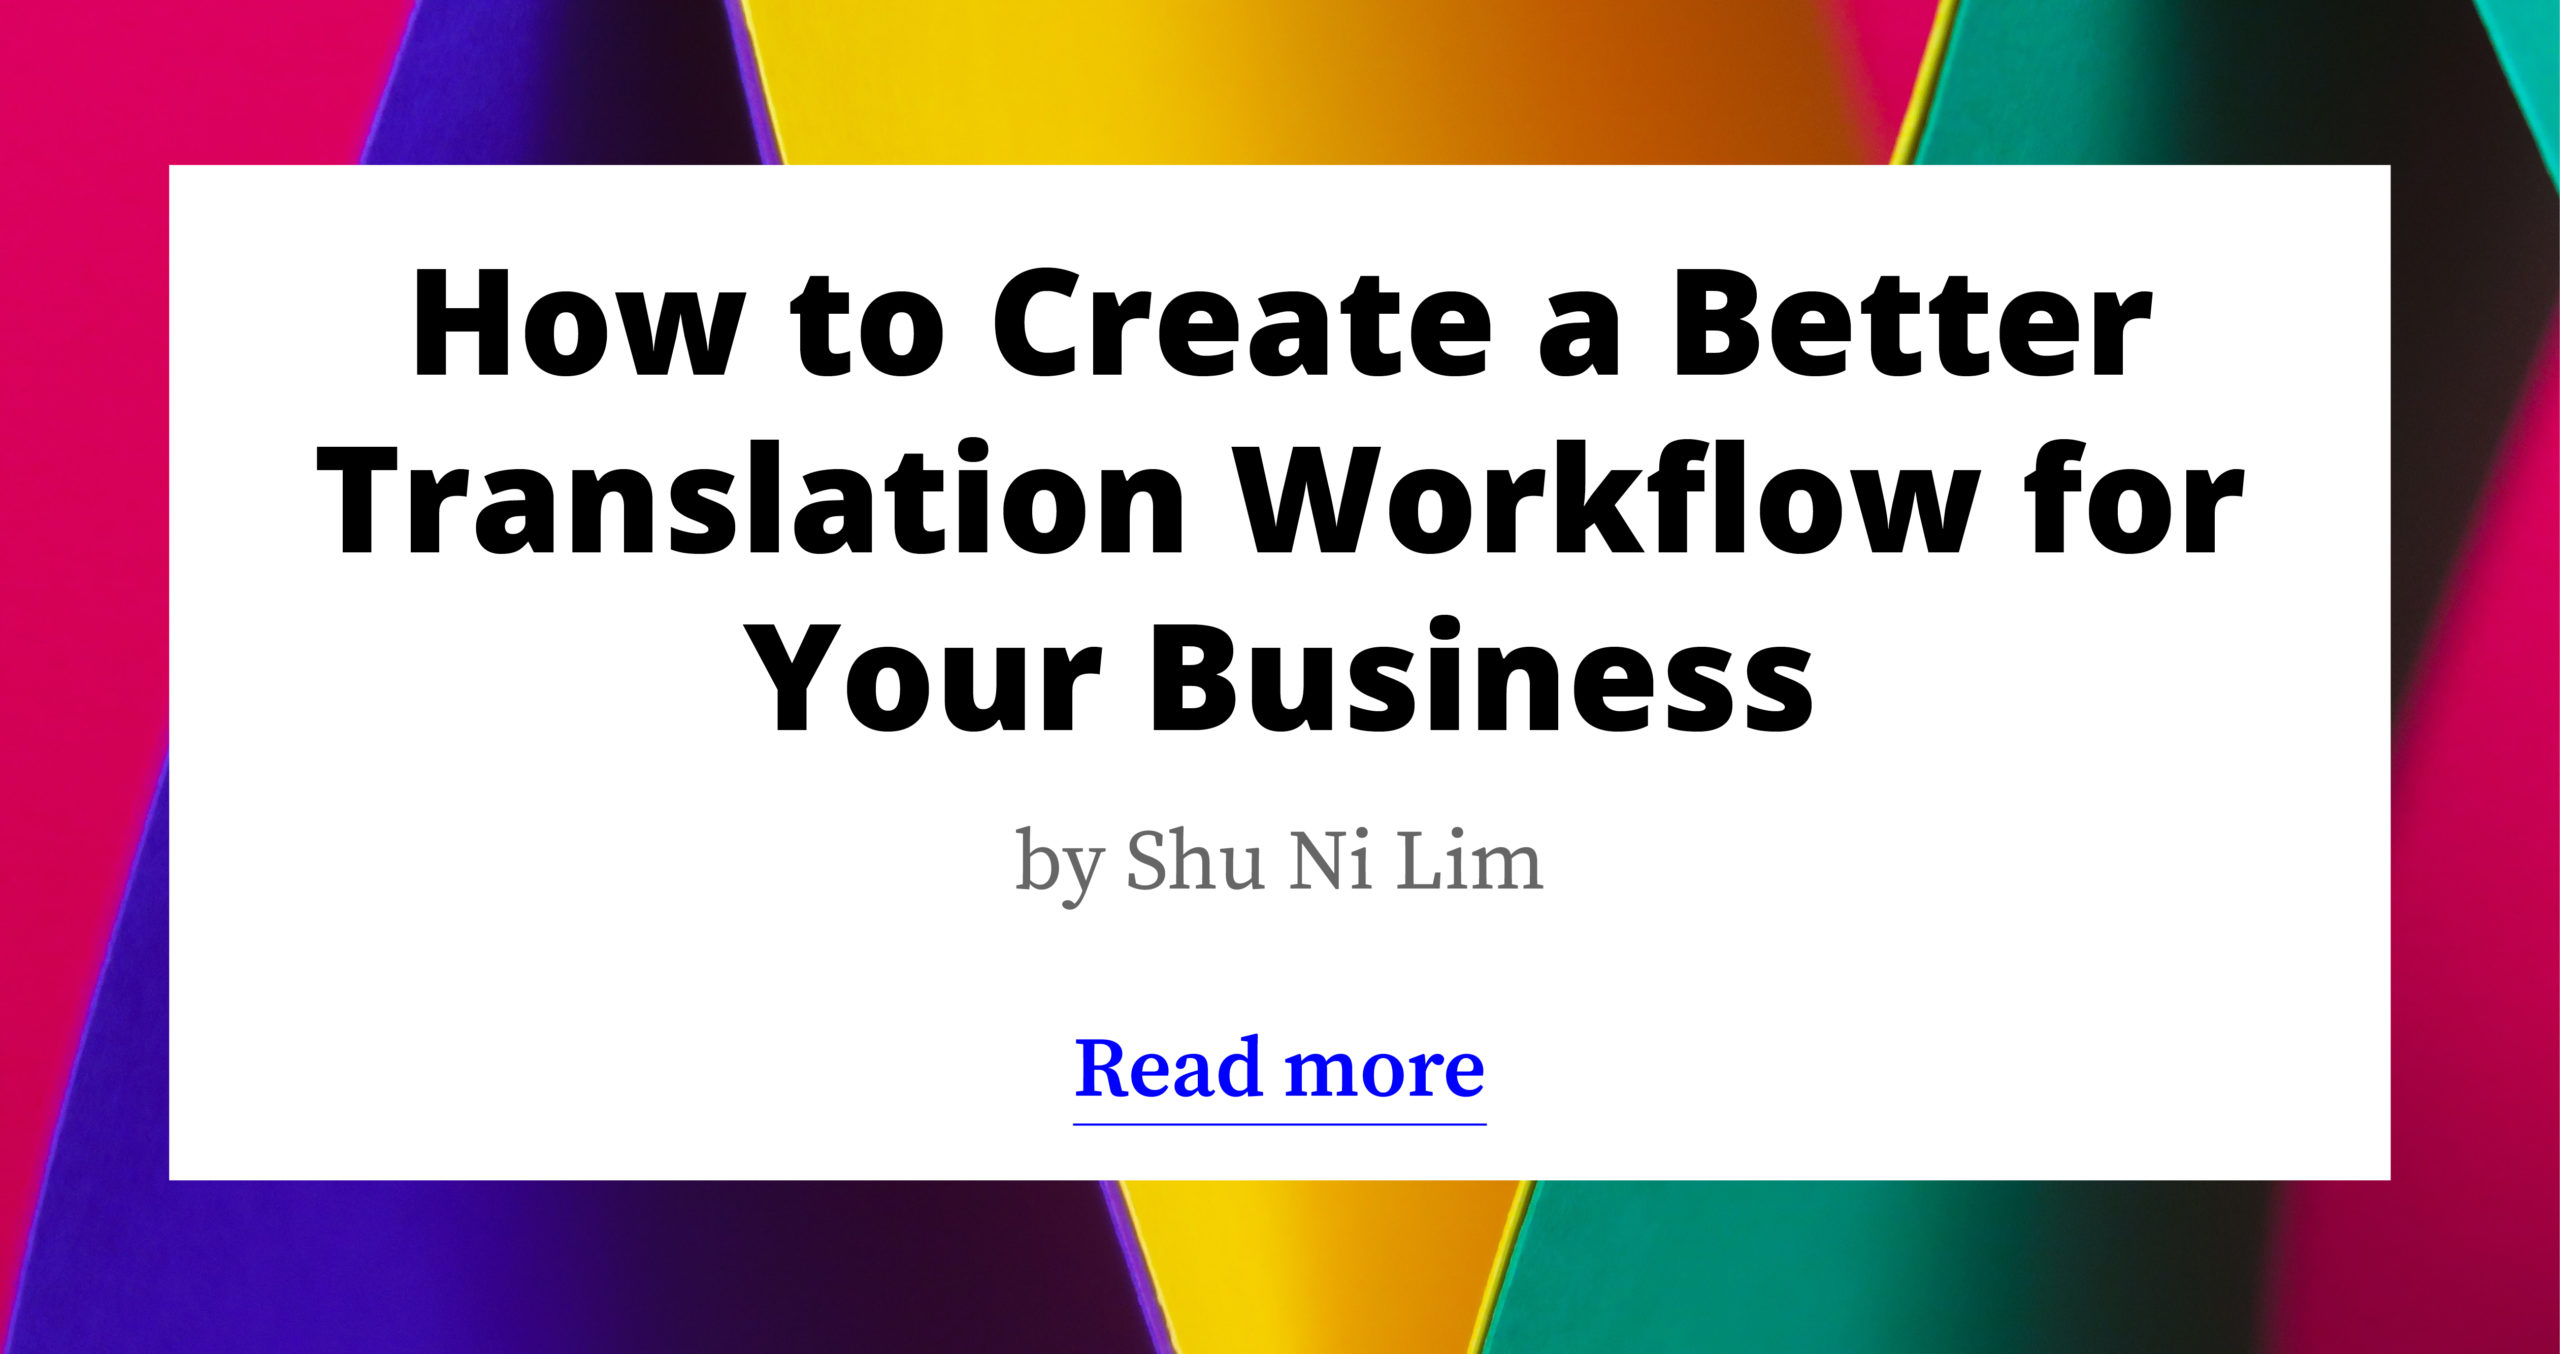 How to Create a Better Translation Workflow for Your Business